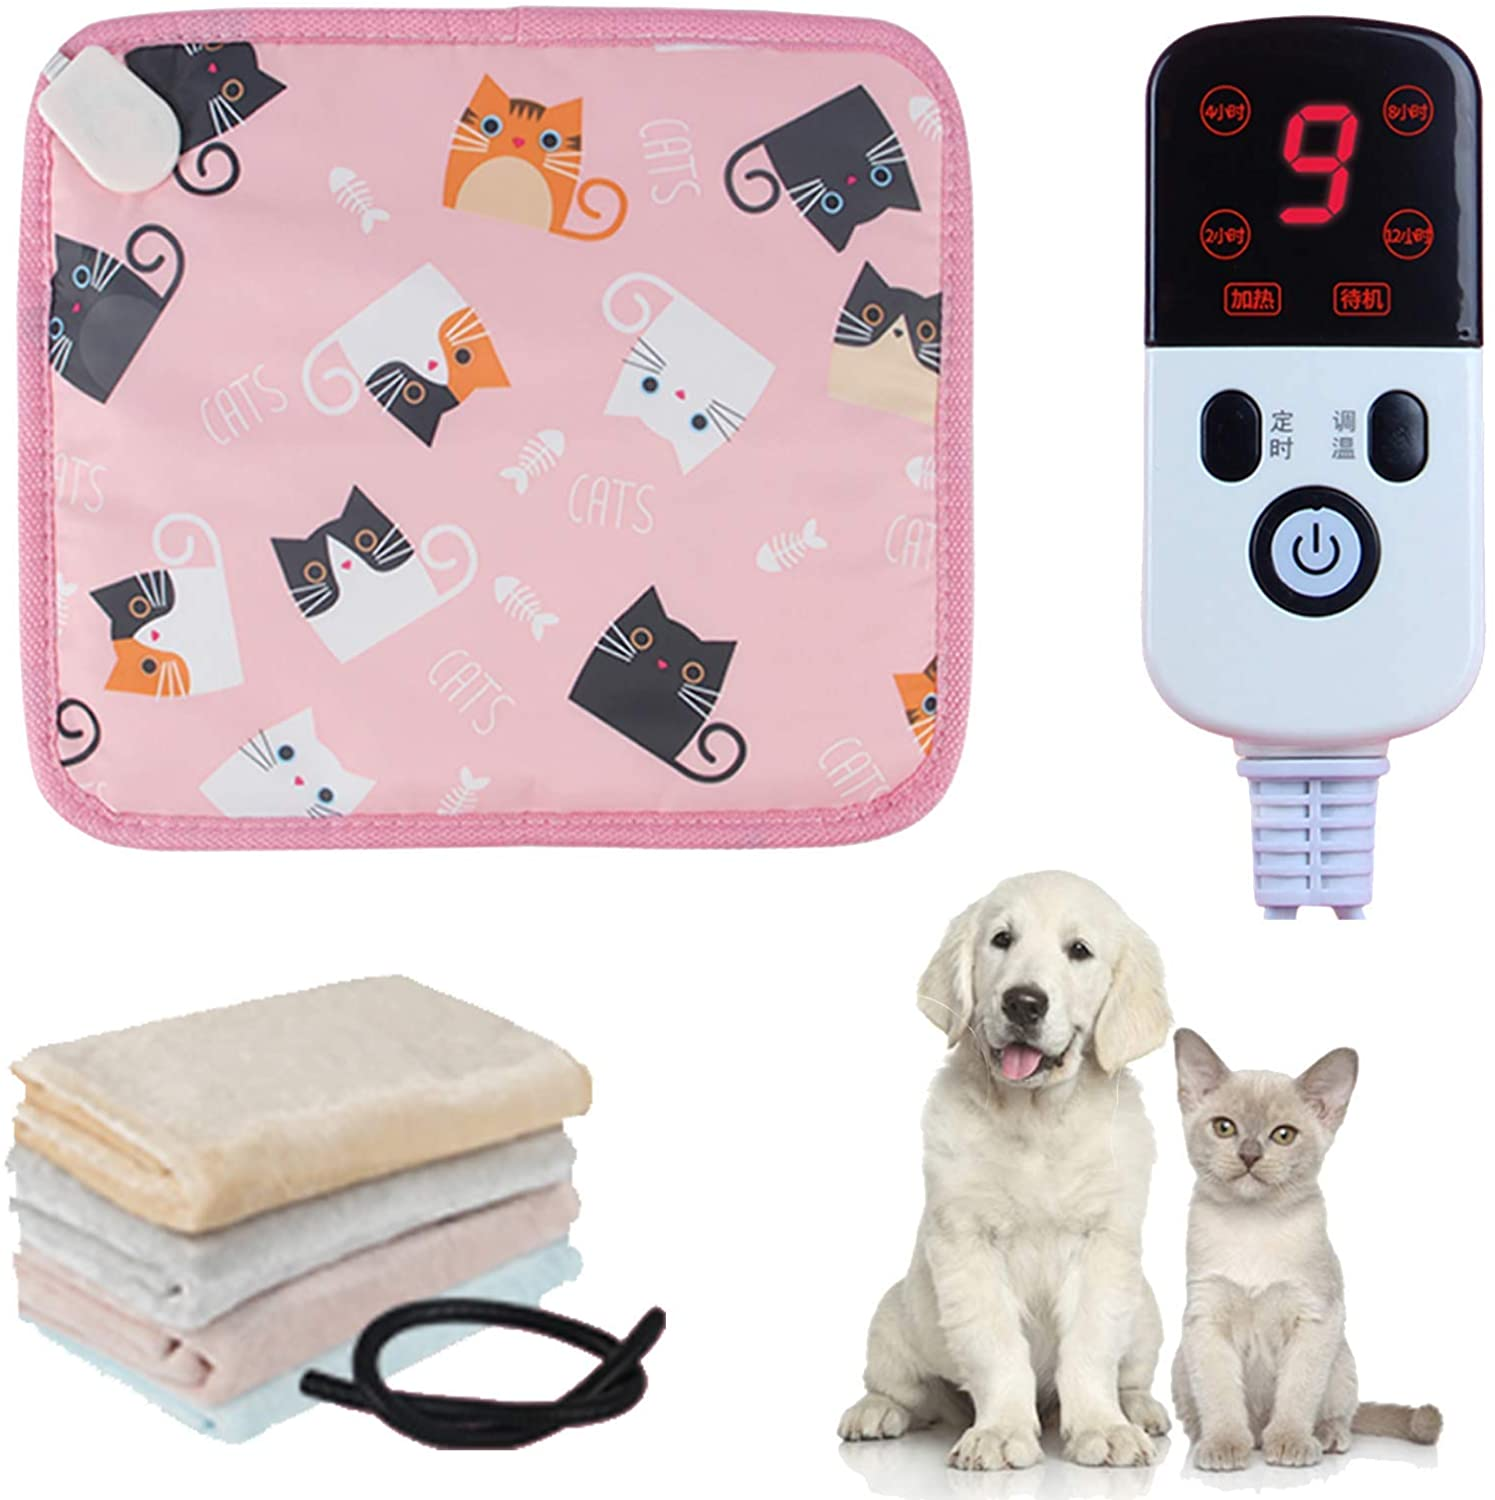 Safety Dog and Cat Heating Pad, Waterproof Indoor Movable Pet Electric Heating Pad, Adjustable Insulation Pad, Constant Temperature Heating Intelligent Timing, with Chewy Steel Rope,9 Gear Adjustment